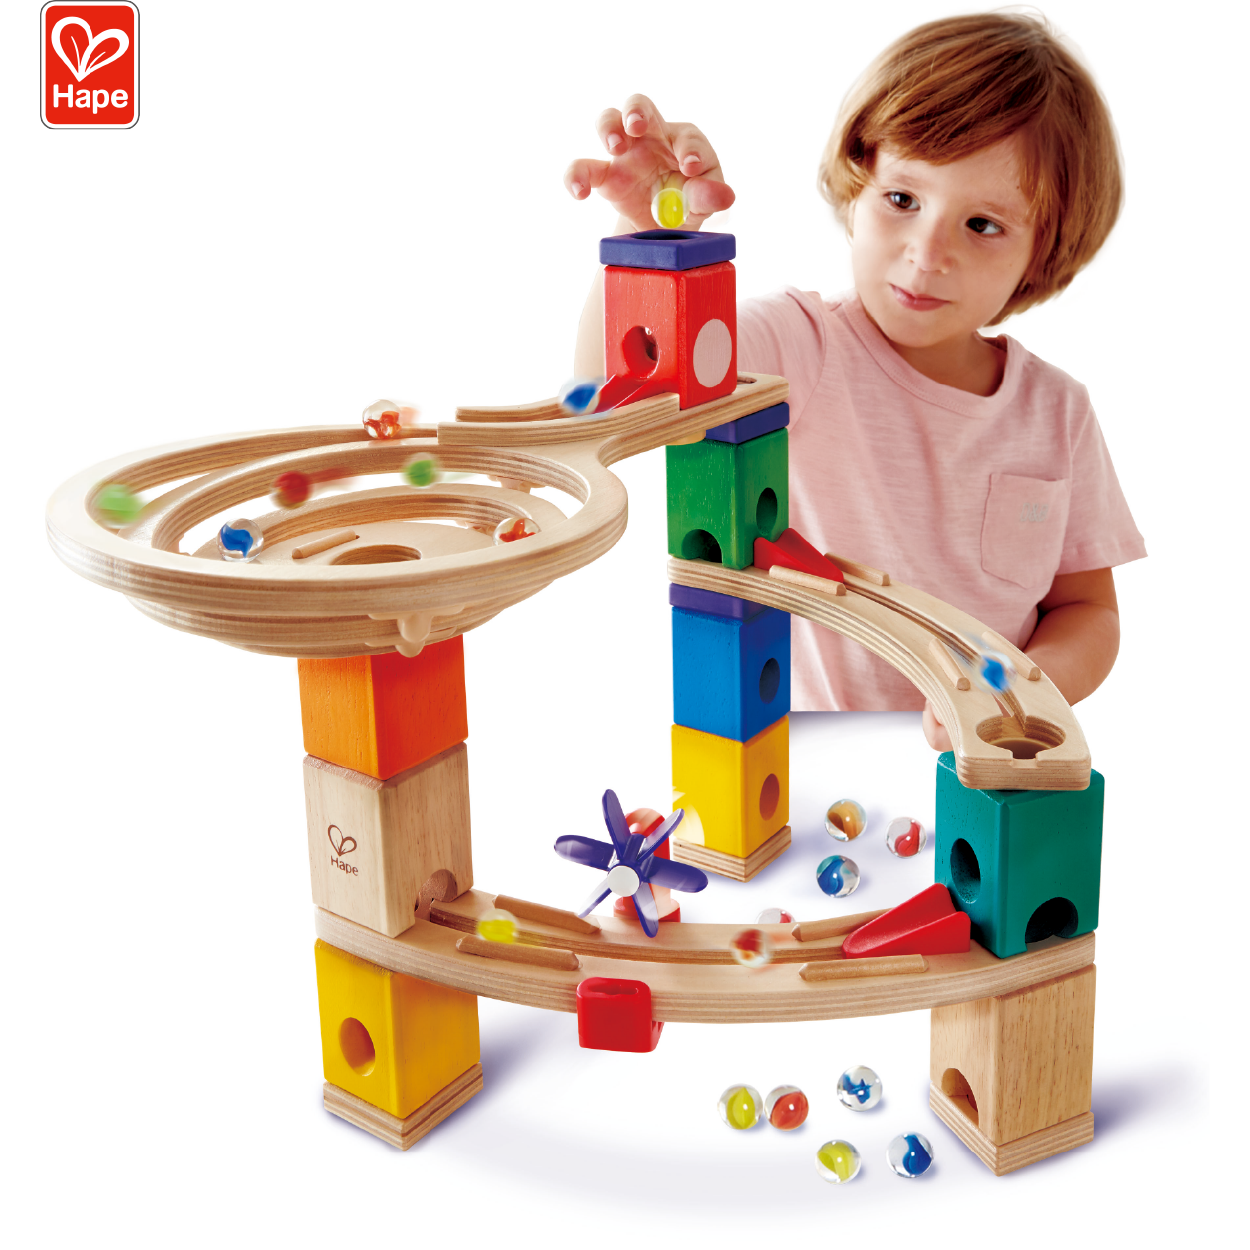 High Quality STEAM Toy Hape Quadrilla Building Blocks Marble Run Game